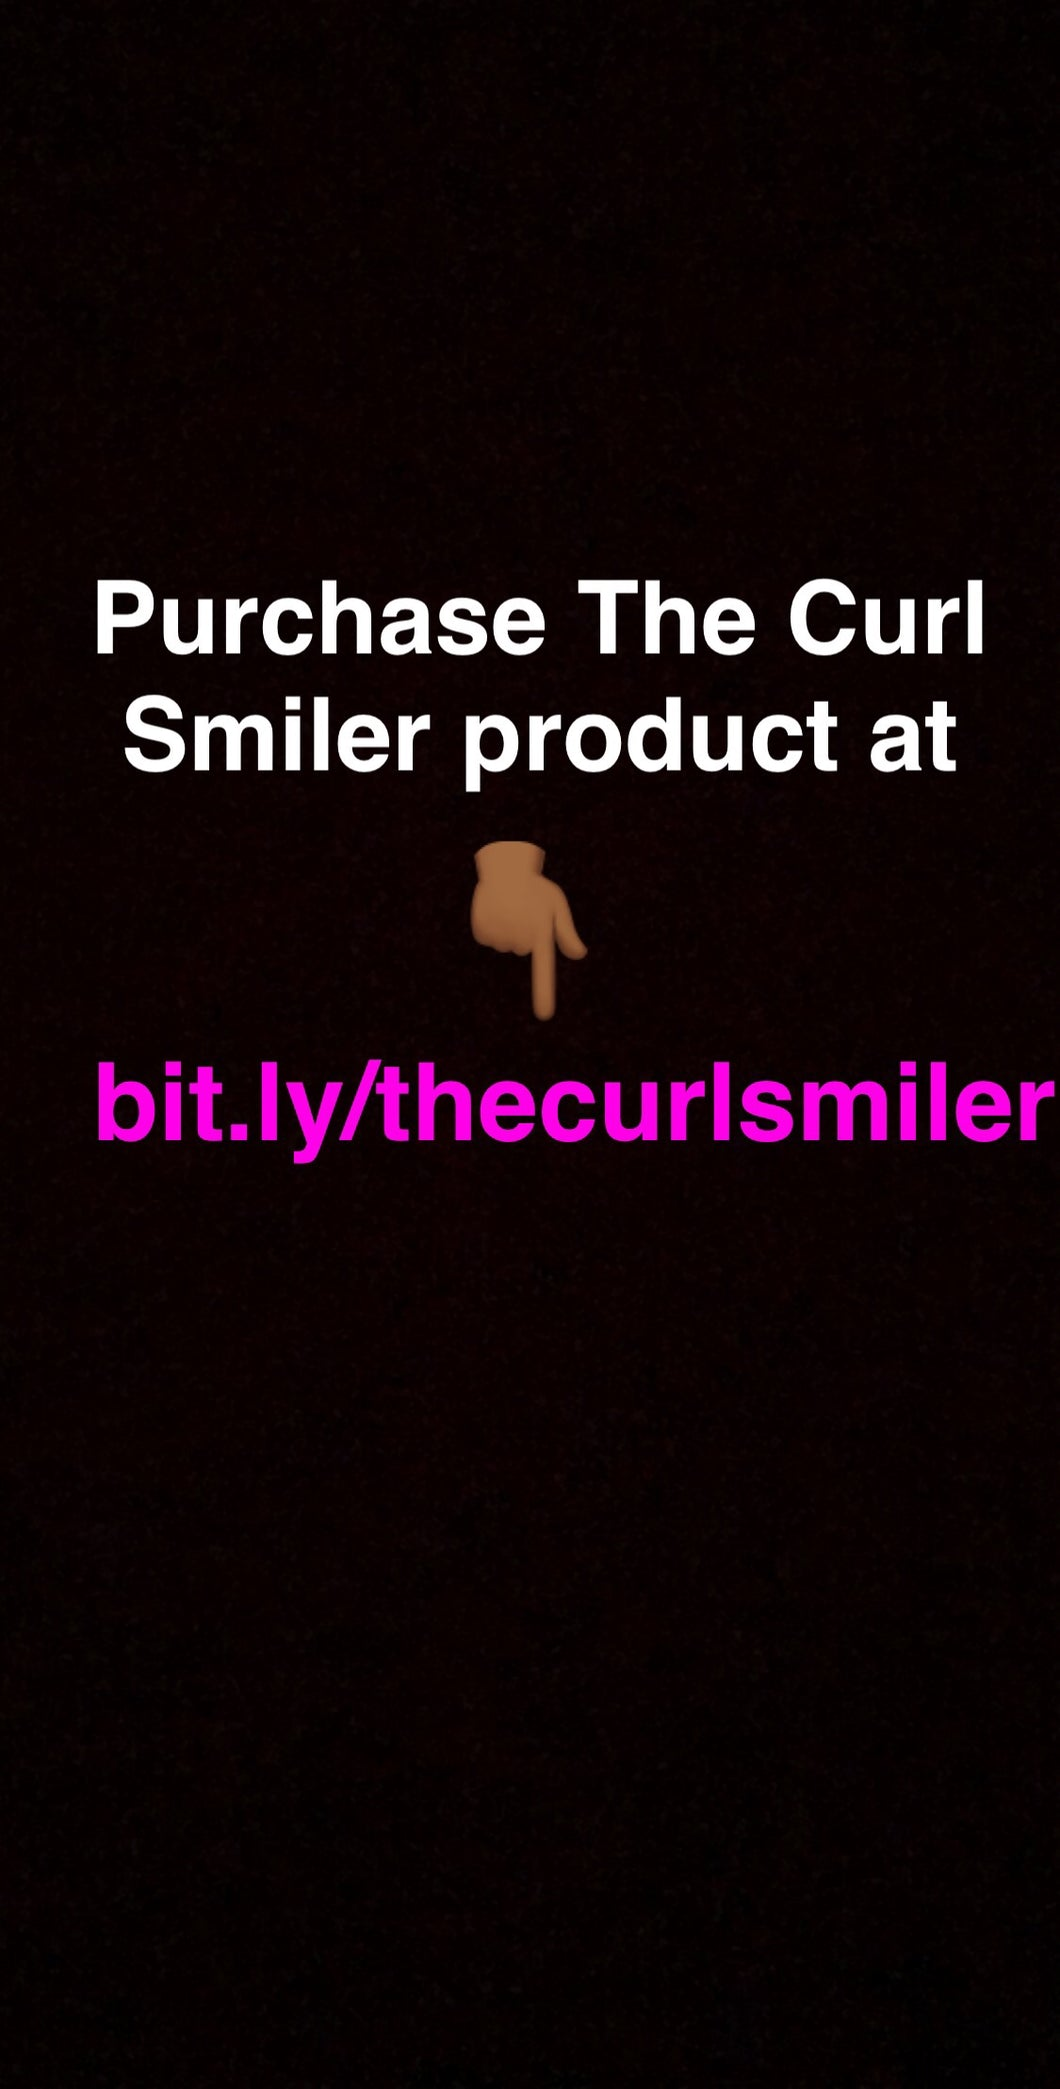 The Curl Smiler